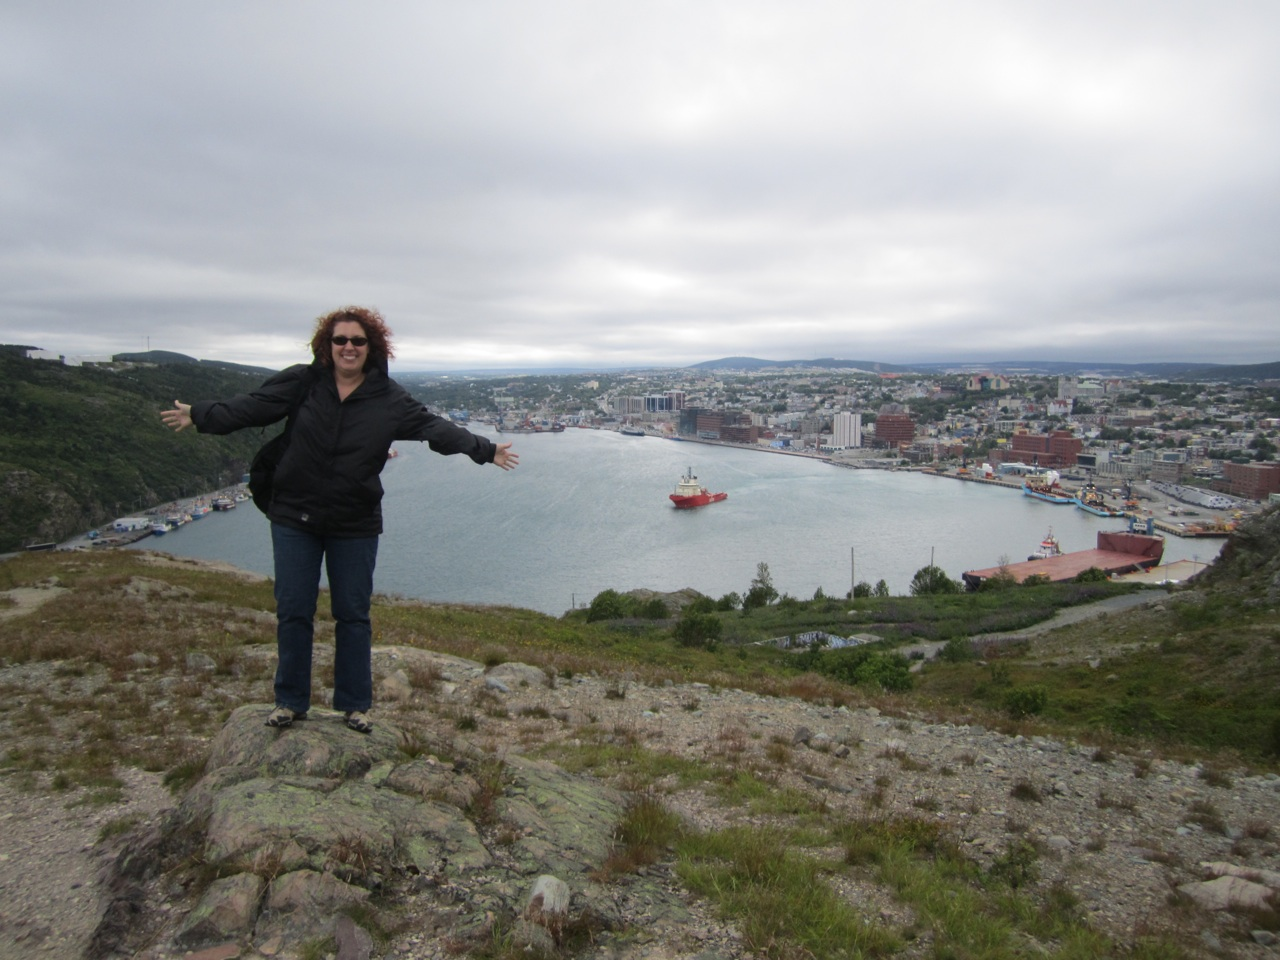 Brenda On Signal Hill Overlooking St. John's